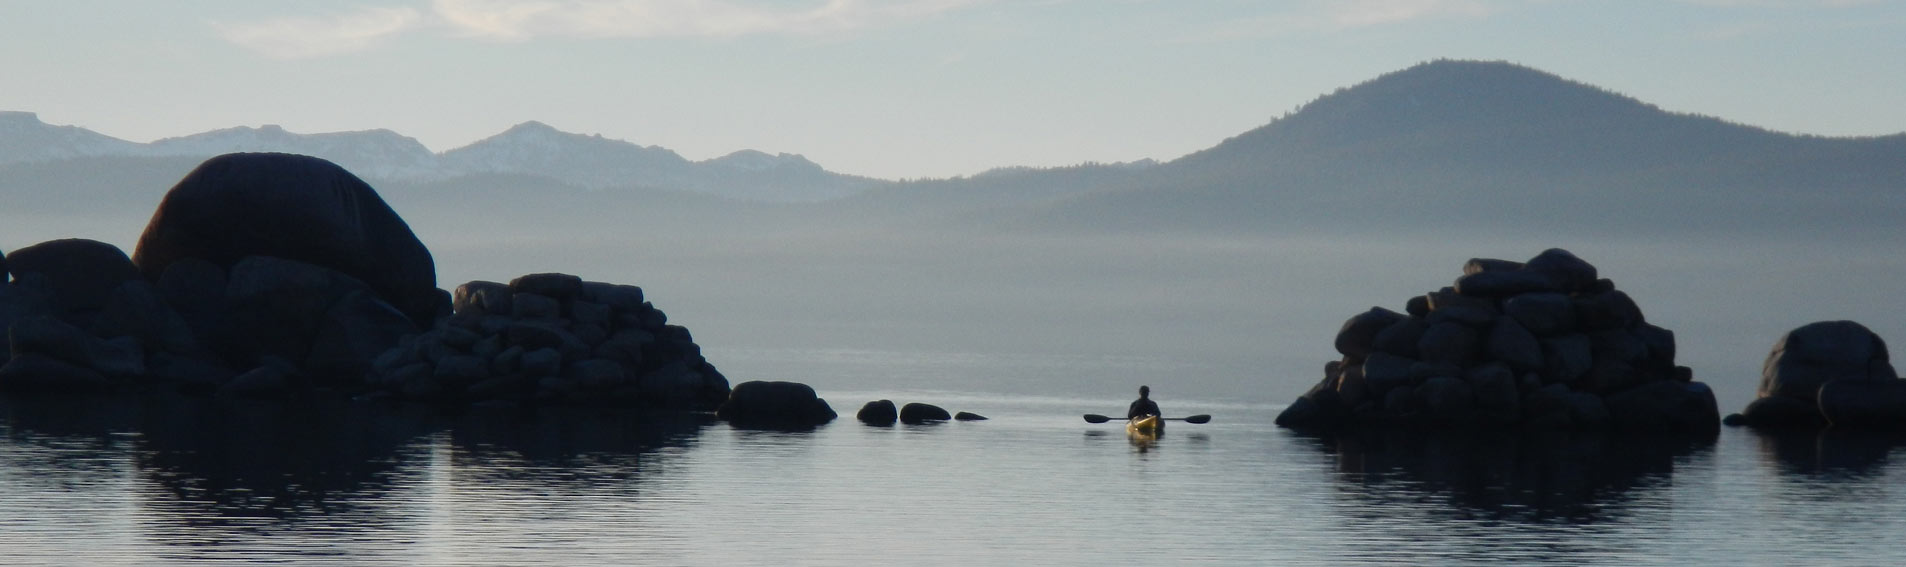 Morning Lake Tahoe Kayaking